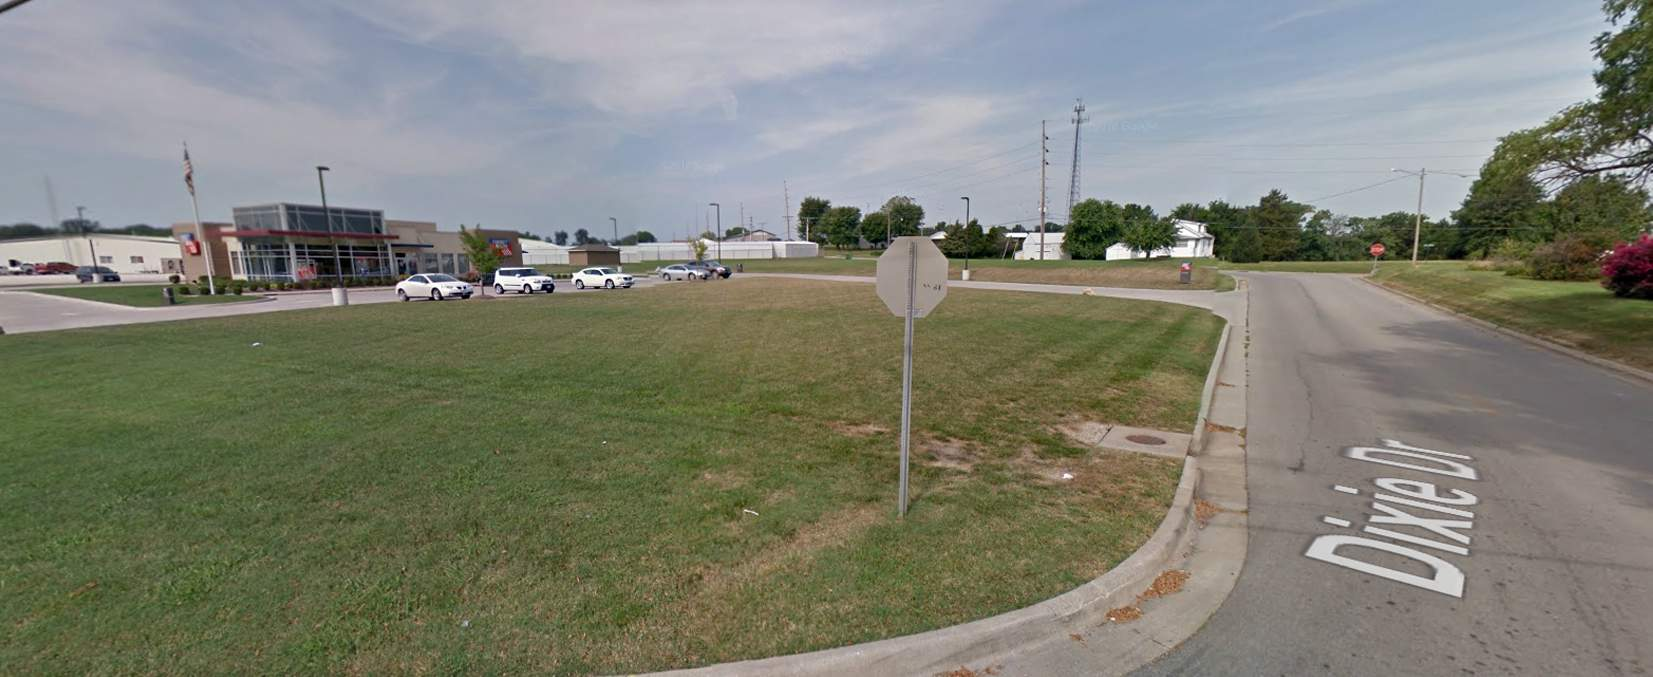 The possible future site of a Taco Bell in the Camptown section of Chester is shown. In the background is First Bank.